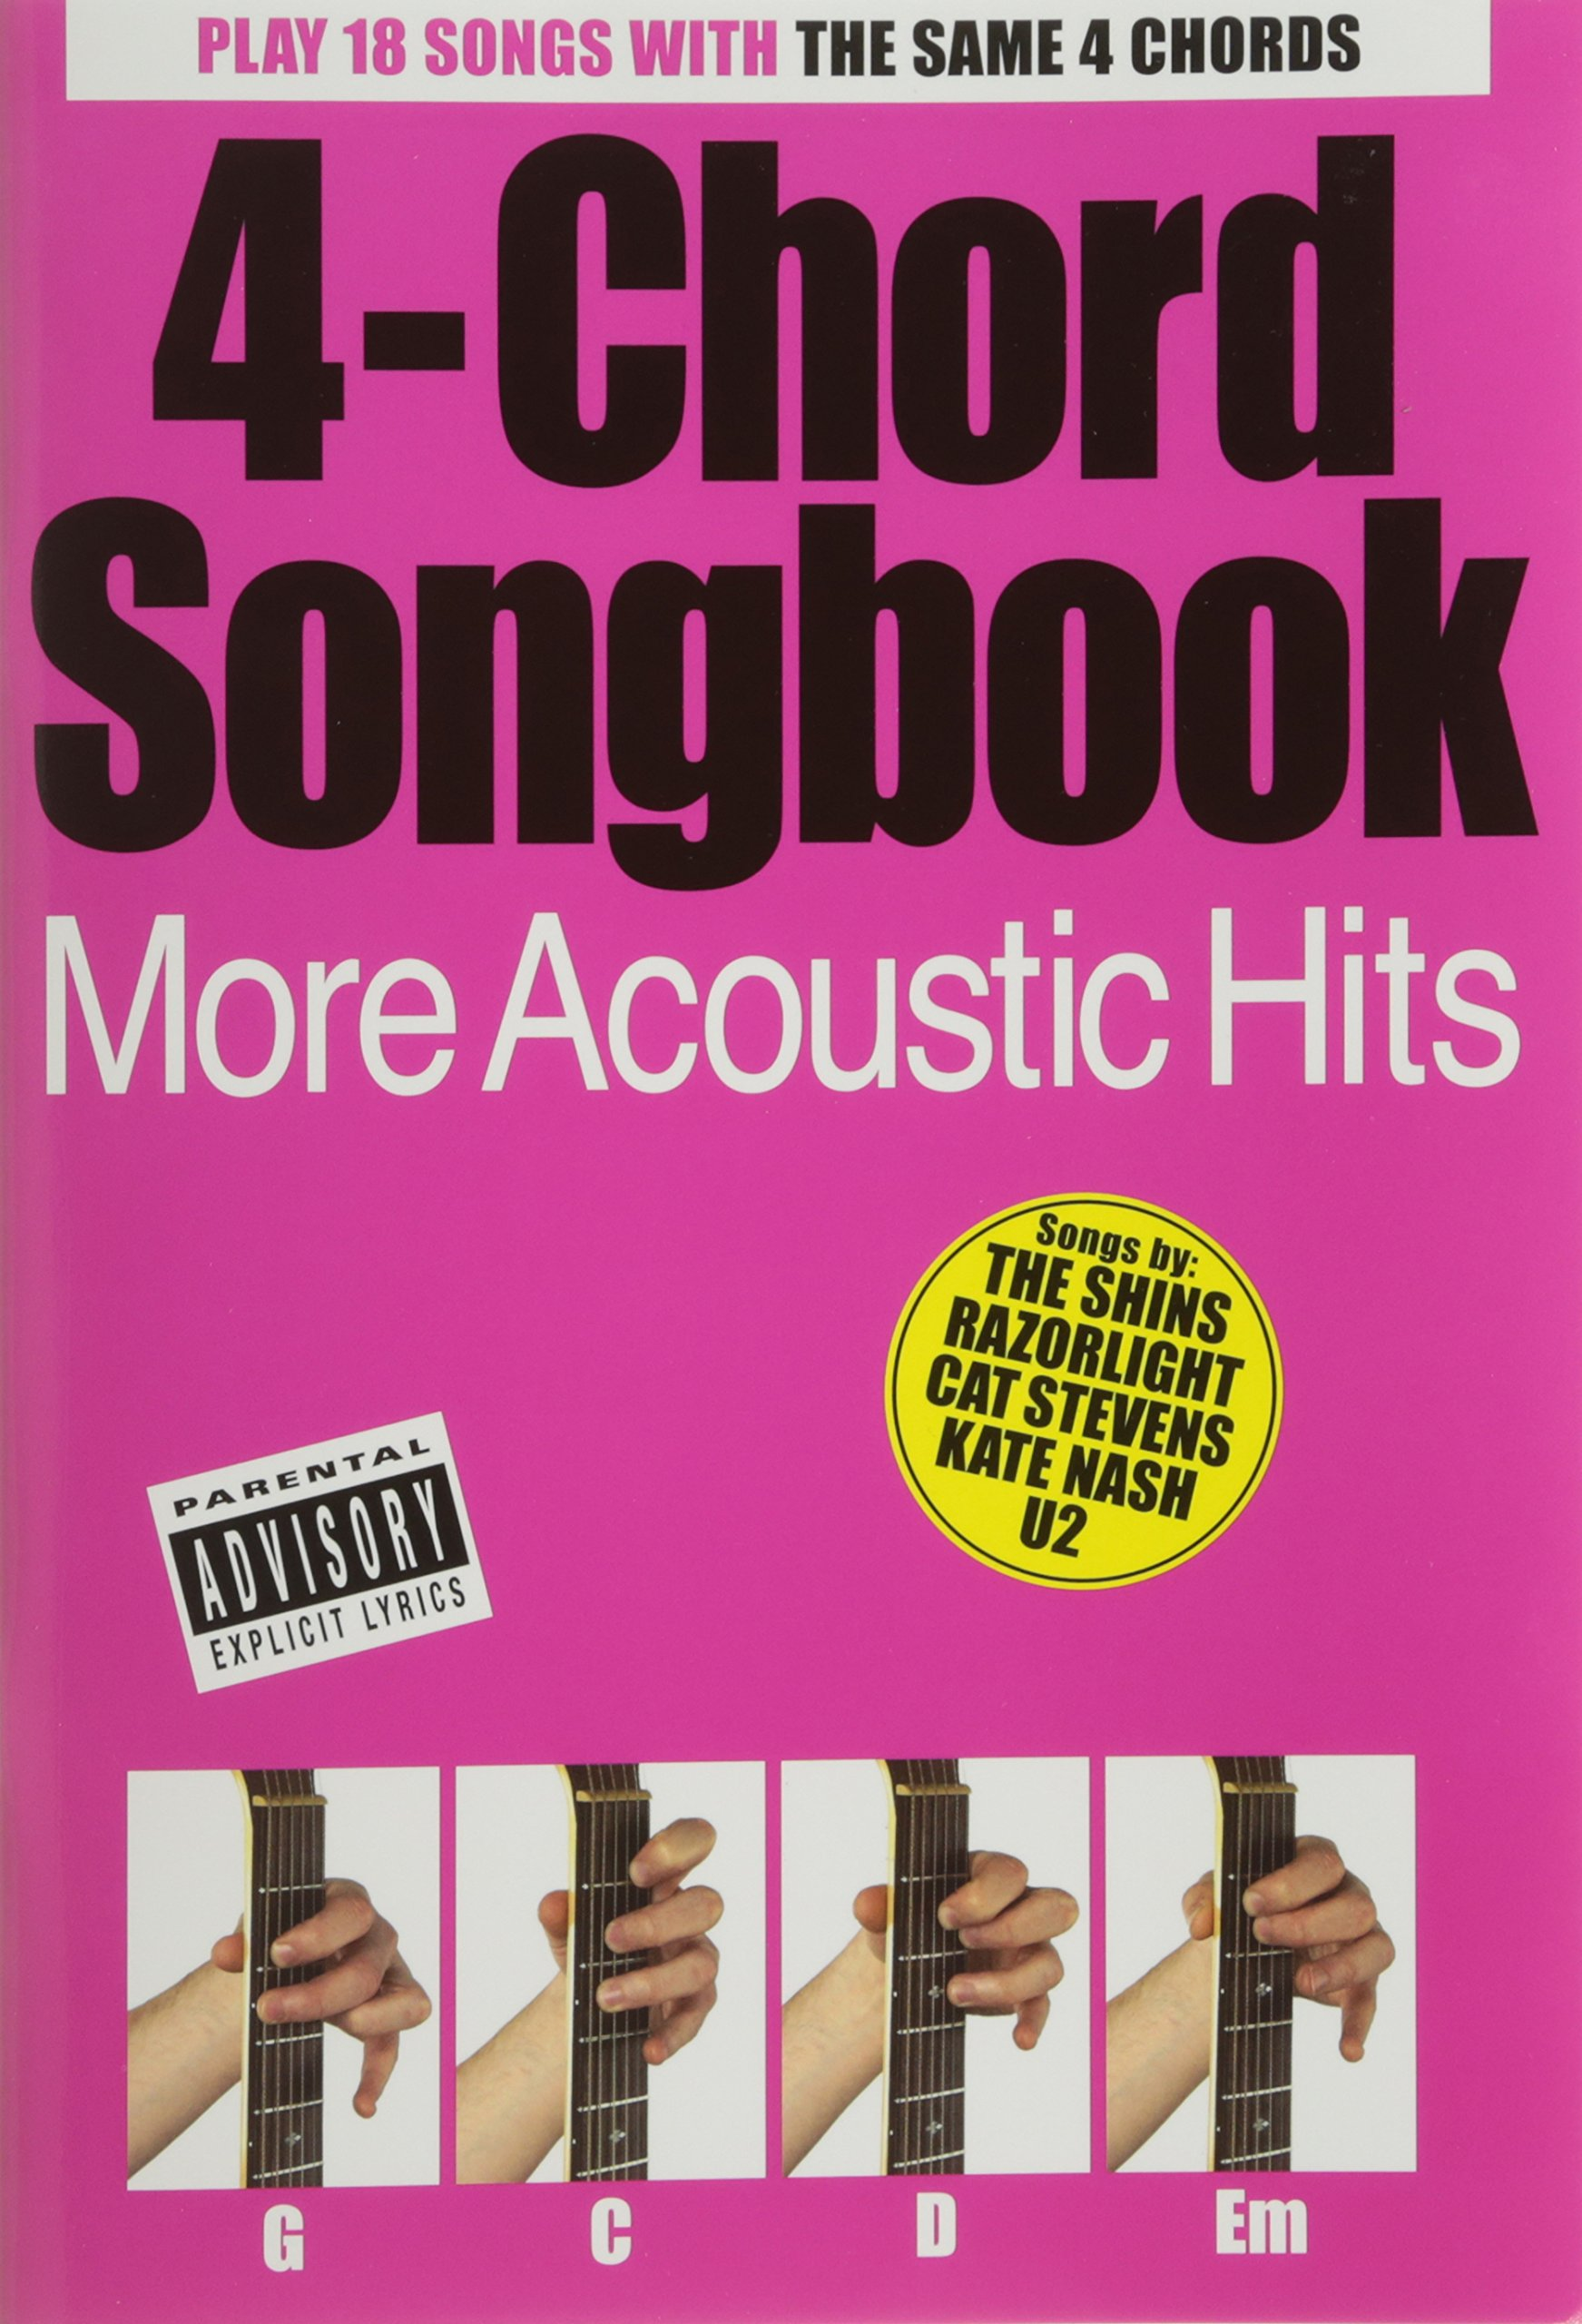 4 Chord Songbook More Acoustic Hits Lyrics Chords Songbook Fr